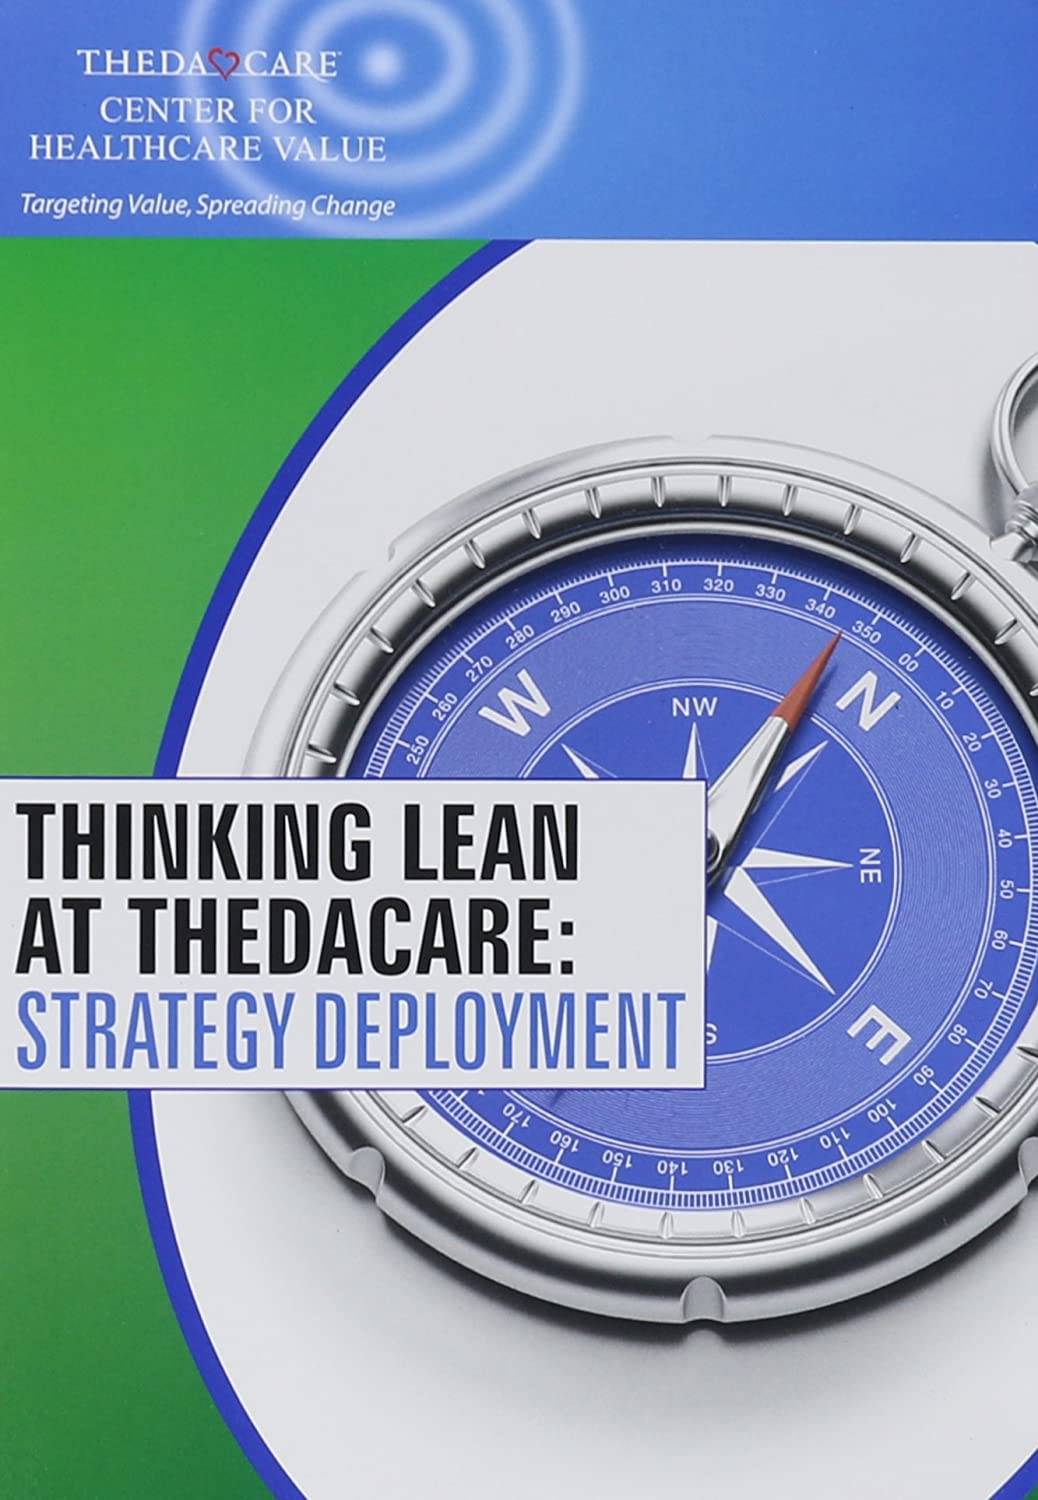 Thinking Lean at Strategy Brand new ThedaCare: Deployment Year-end annual account